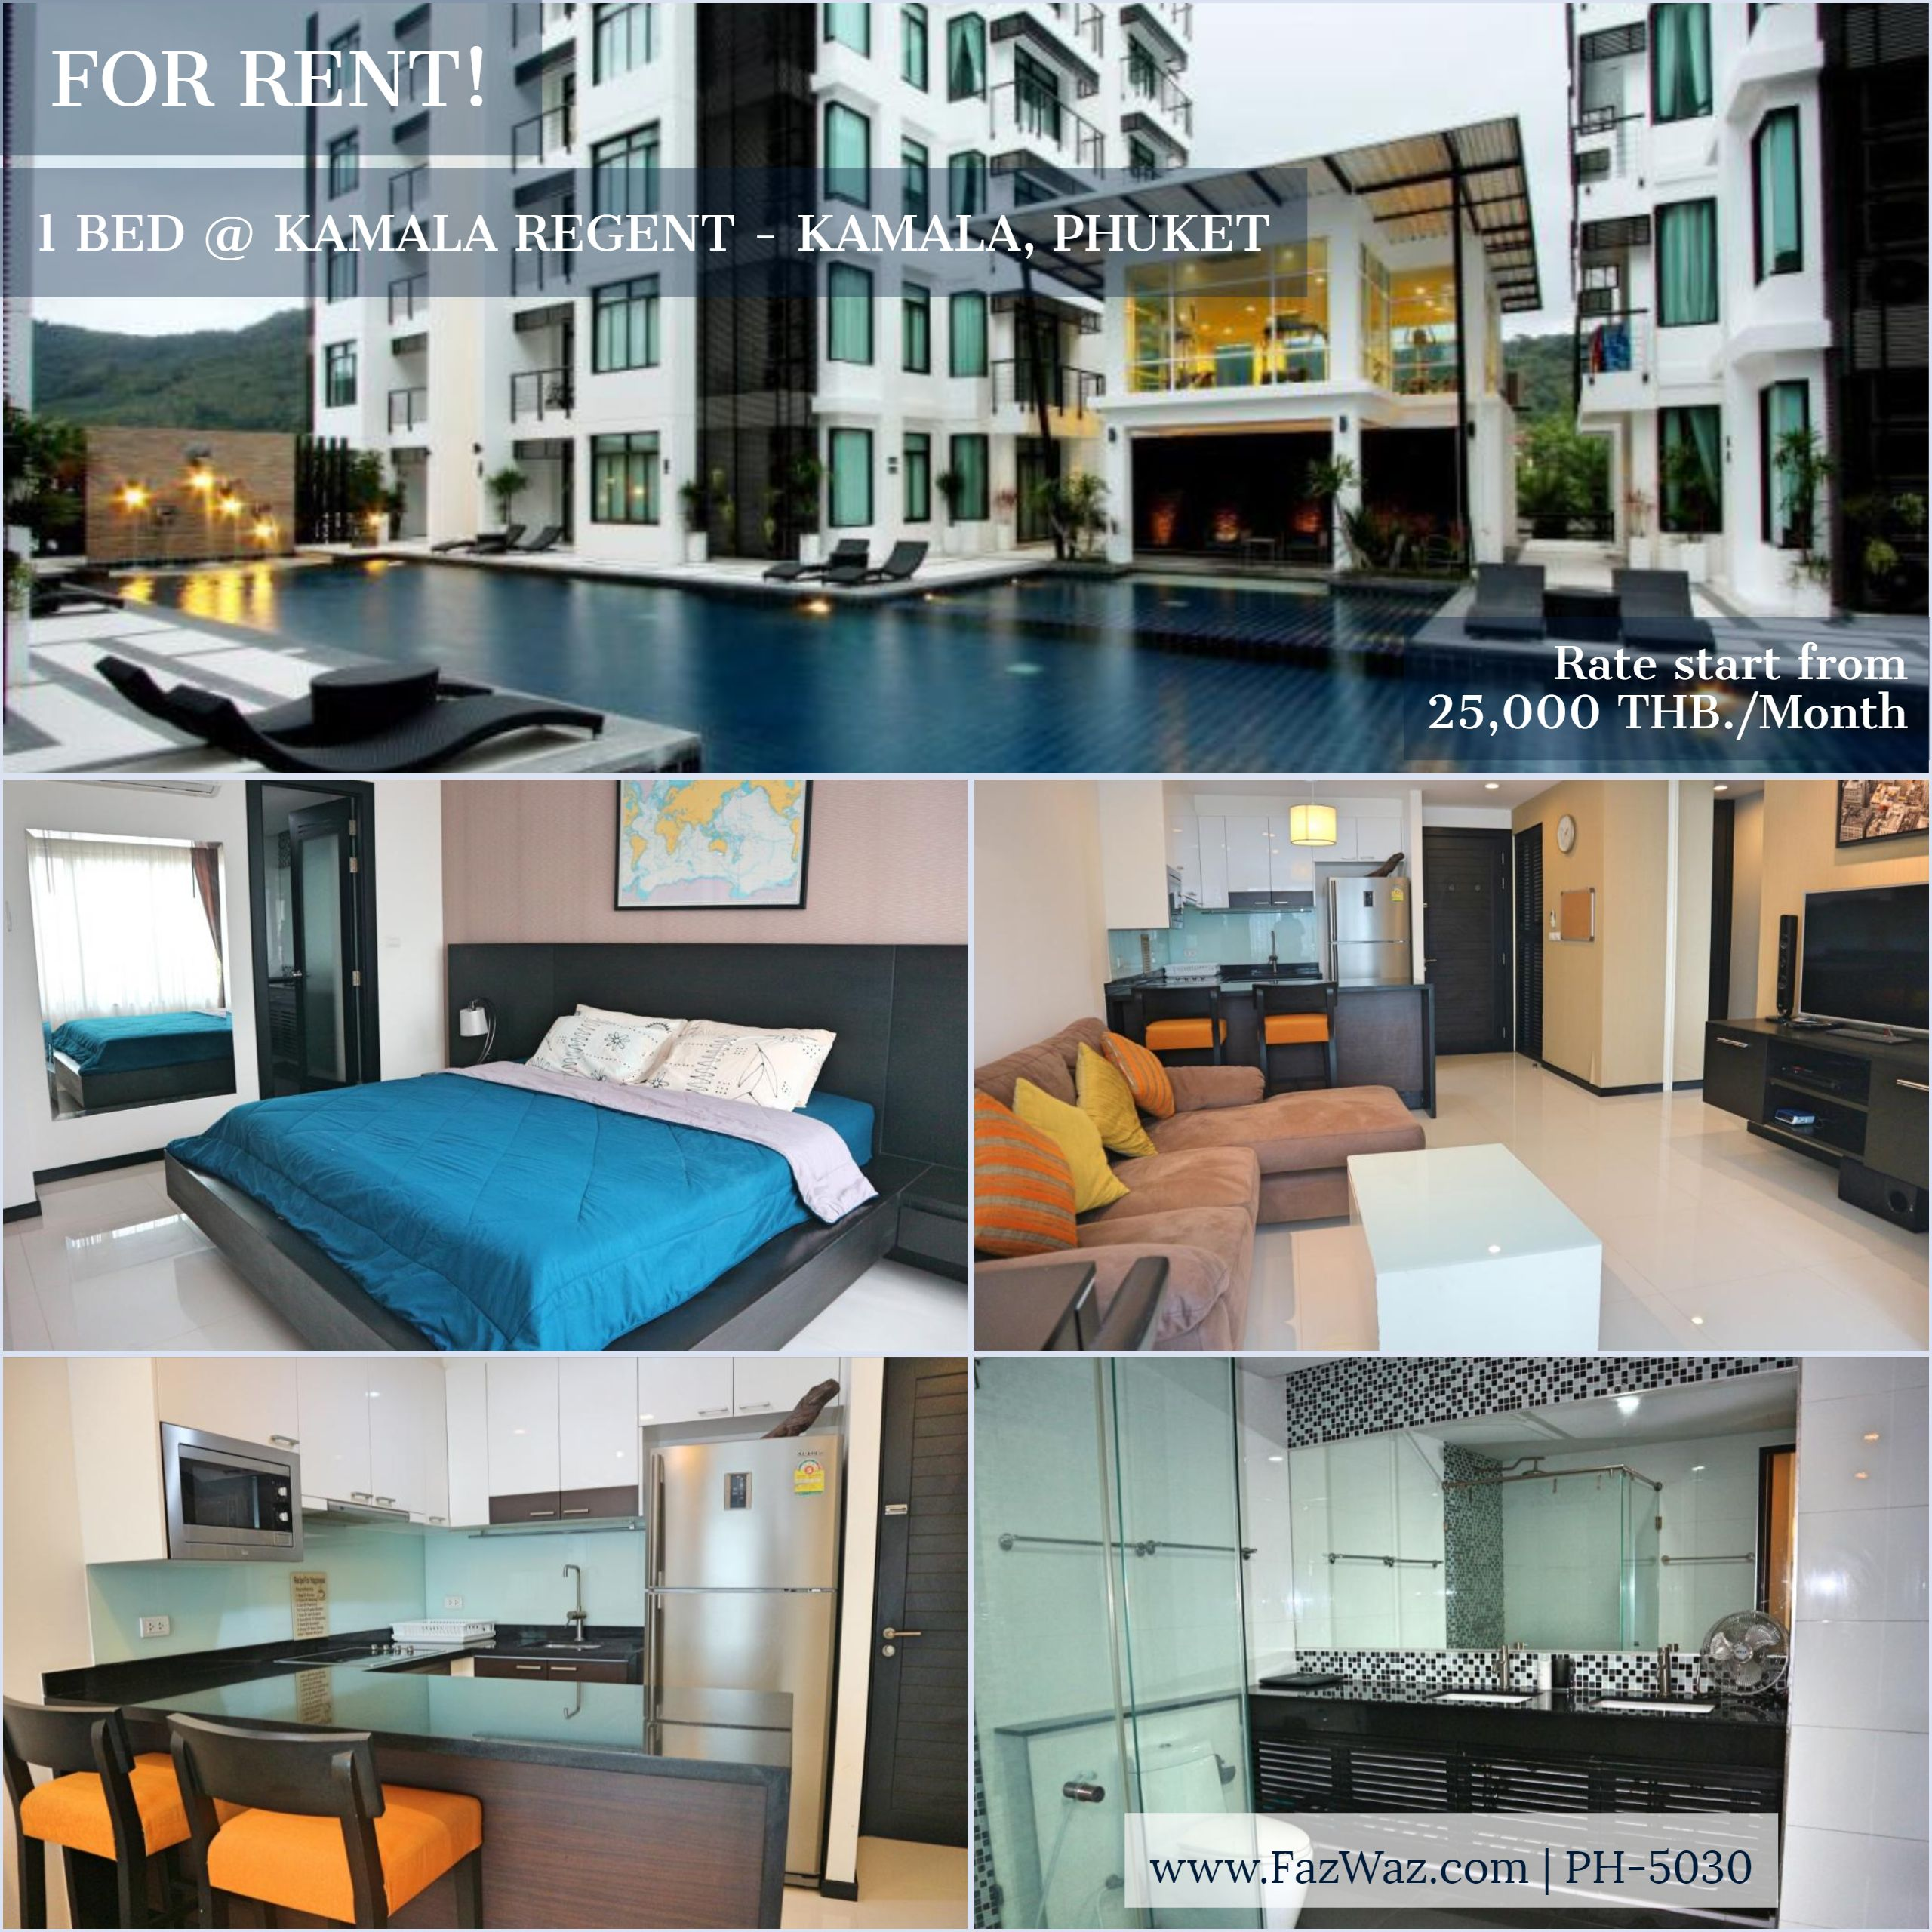 1 Bedroom Modern Apartment For Rent Modernapartment Apartmentforrent Phuket Thailand Lofts For Rent Apartments For Rent Condos For Rent